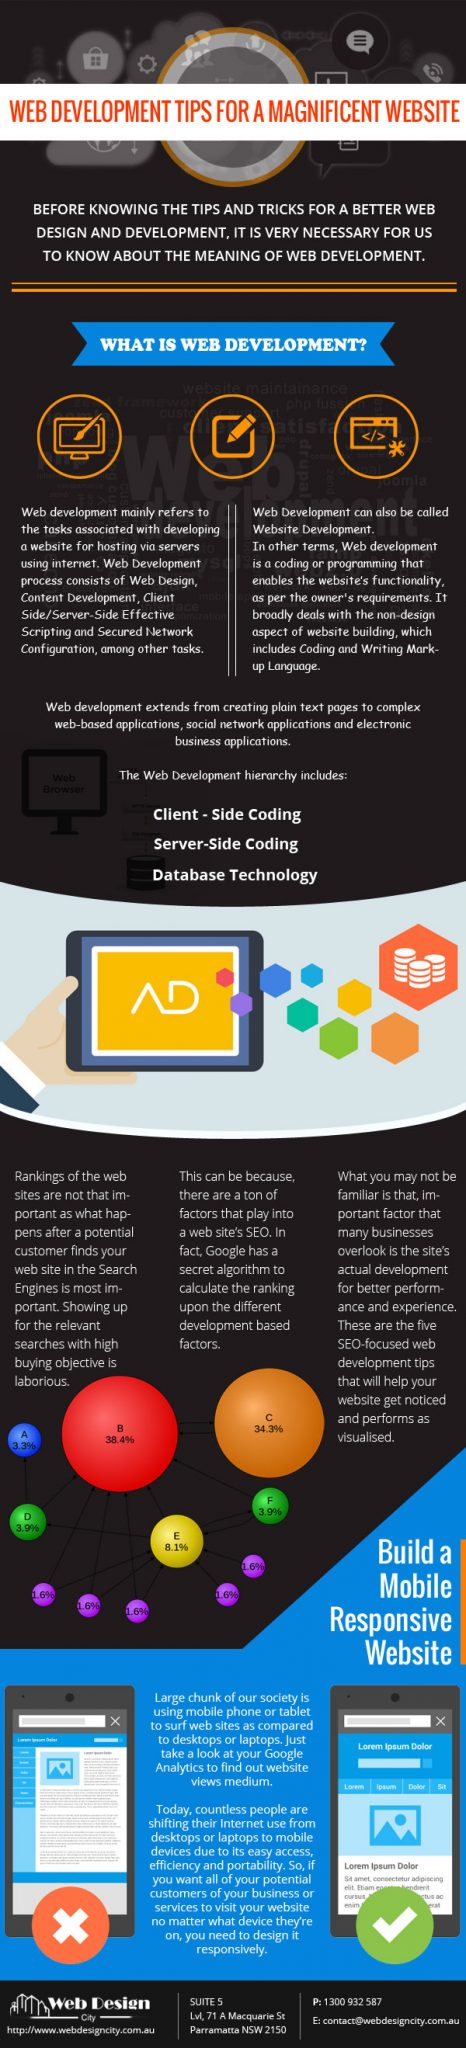 Web Development TIPS Infographic